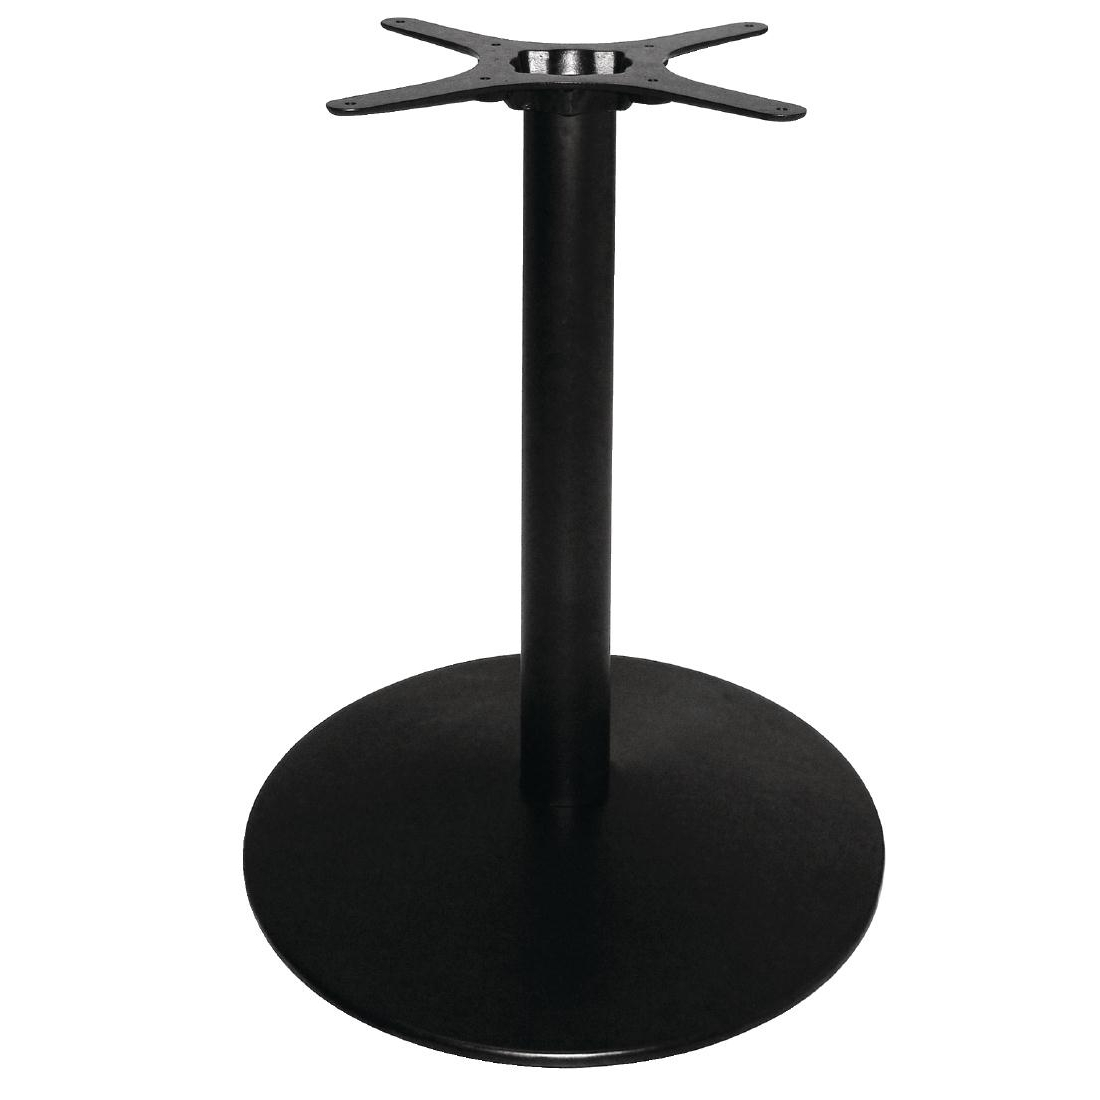 Pied de table en fonte Bolero rond